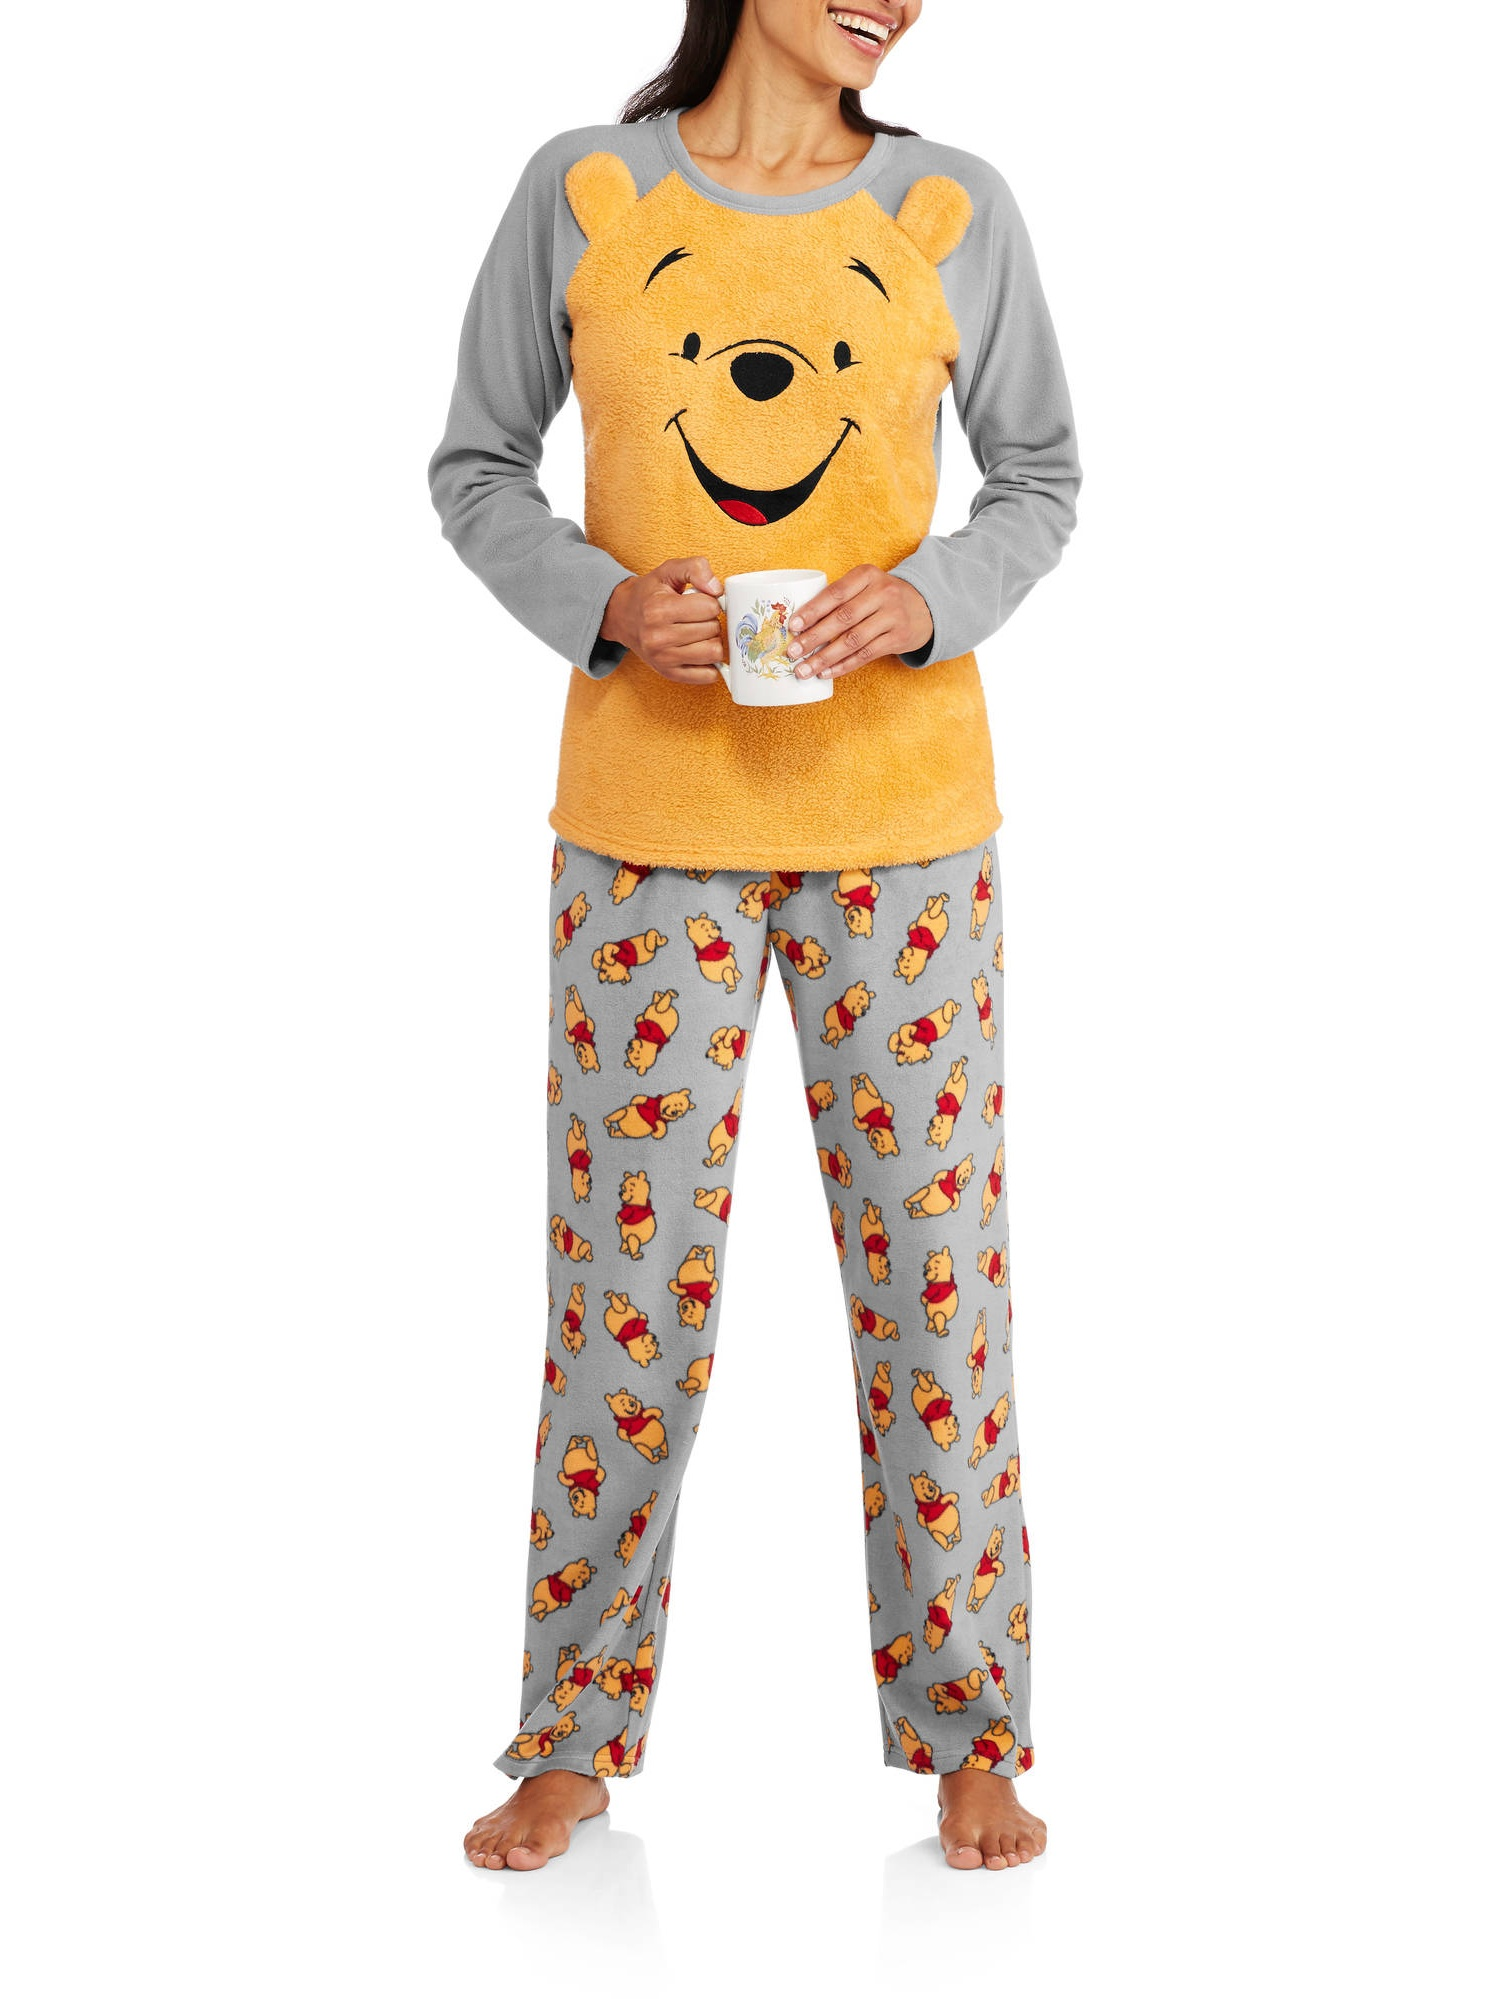 497c81066e00 Licensed - Winnie the Pooh Women s   Women s Plus 3D PJ Set ...